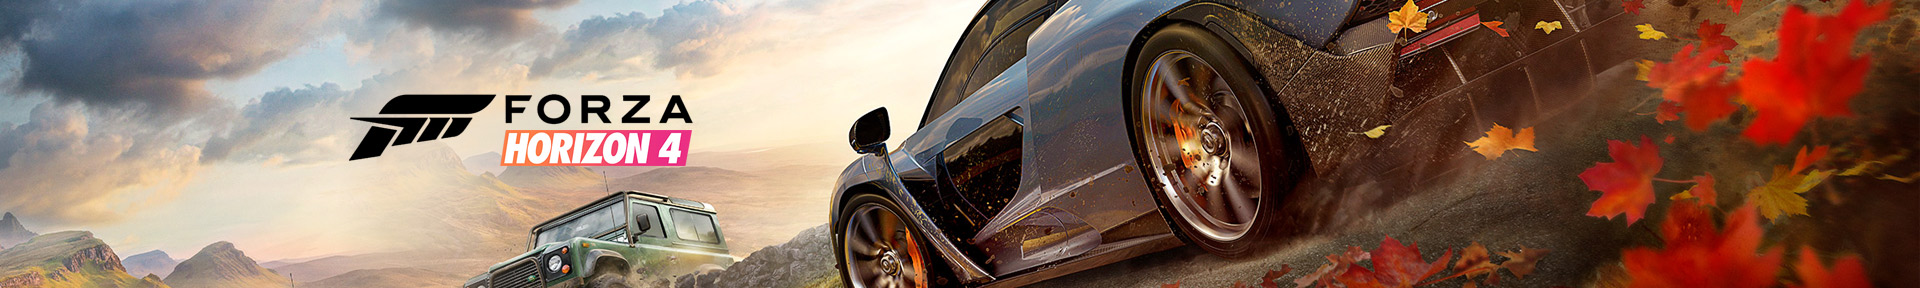 Safe Forza Horizon 4 Credits Store, Cheap FH4 Money for Sale